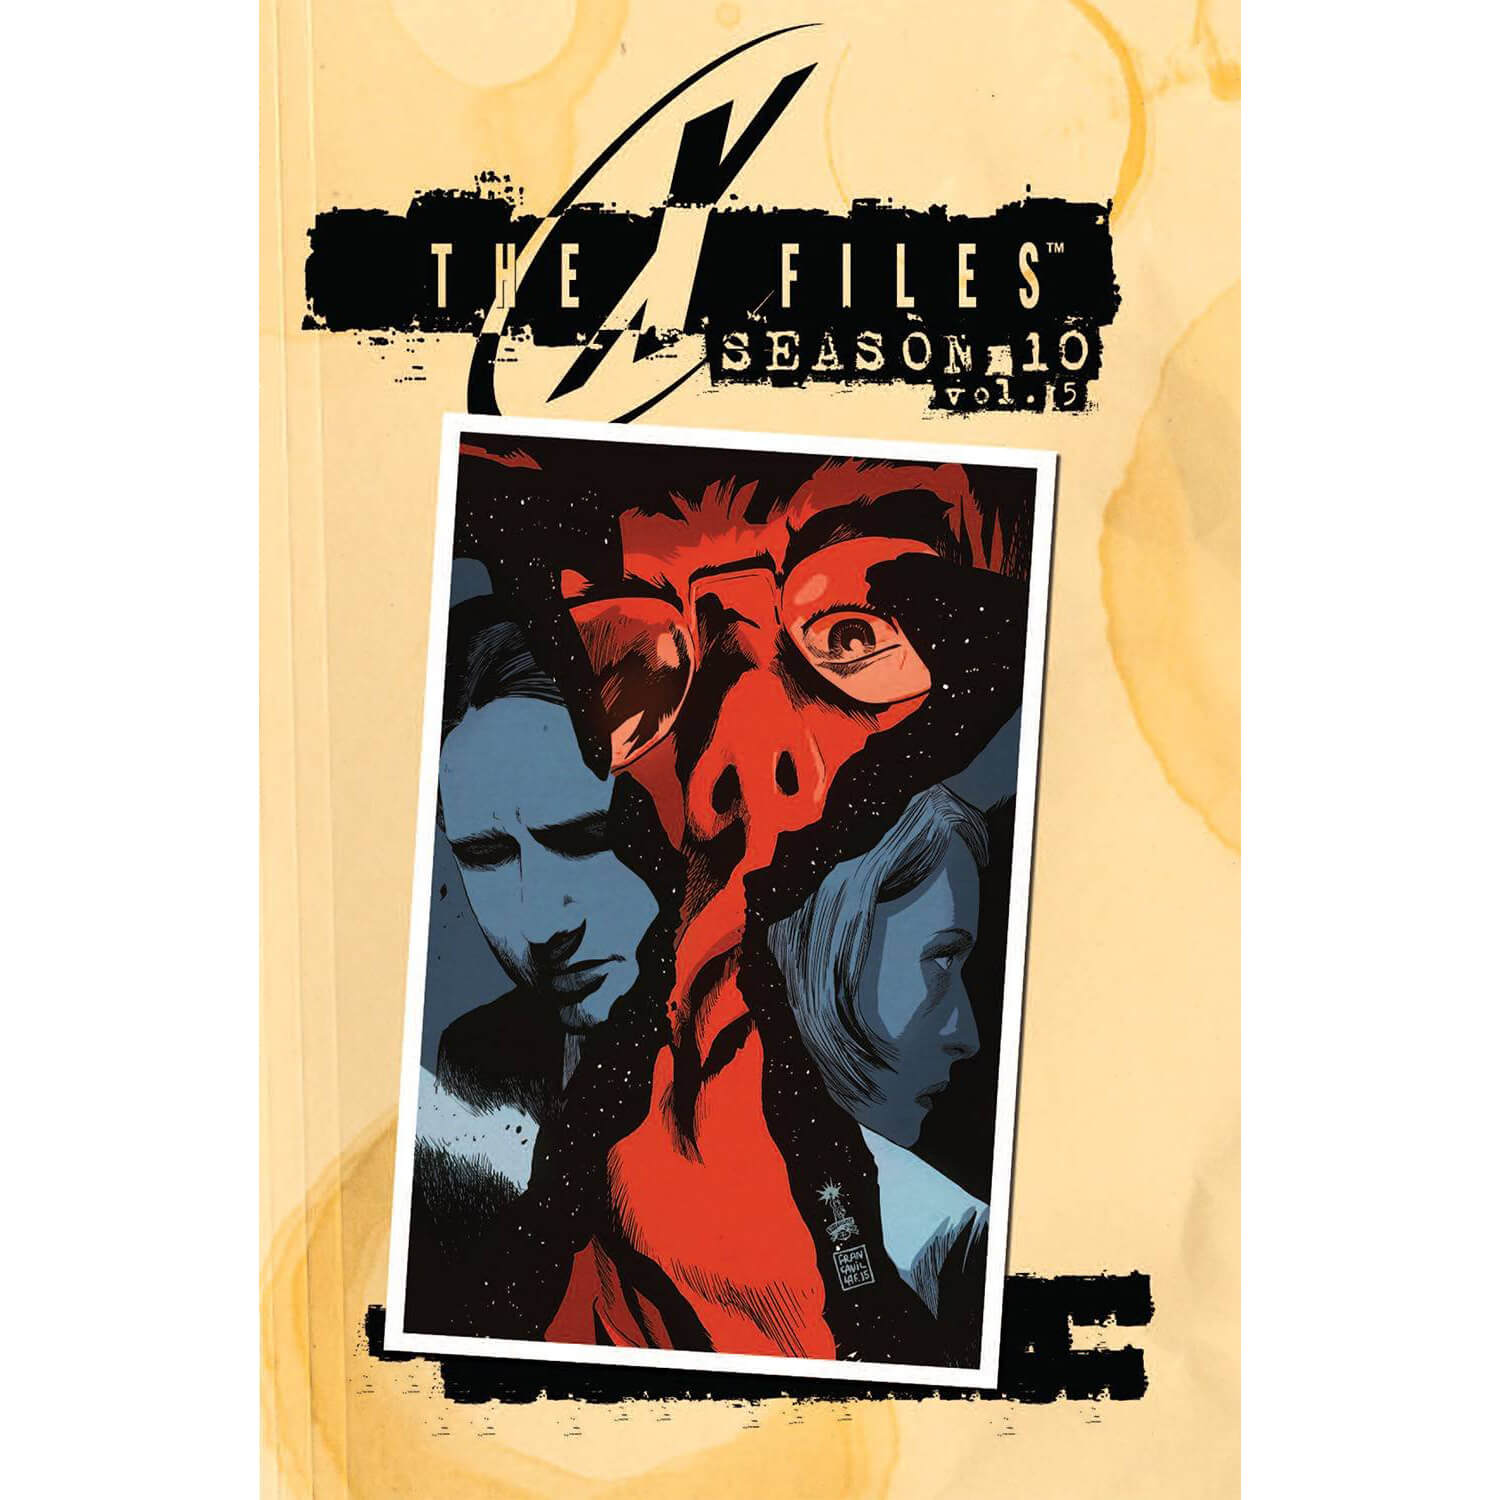 The X-Files: Season 10 - Volume 5 Graphic Novel